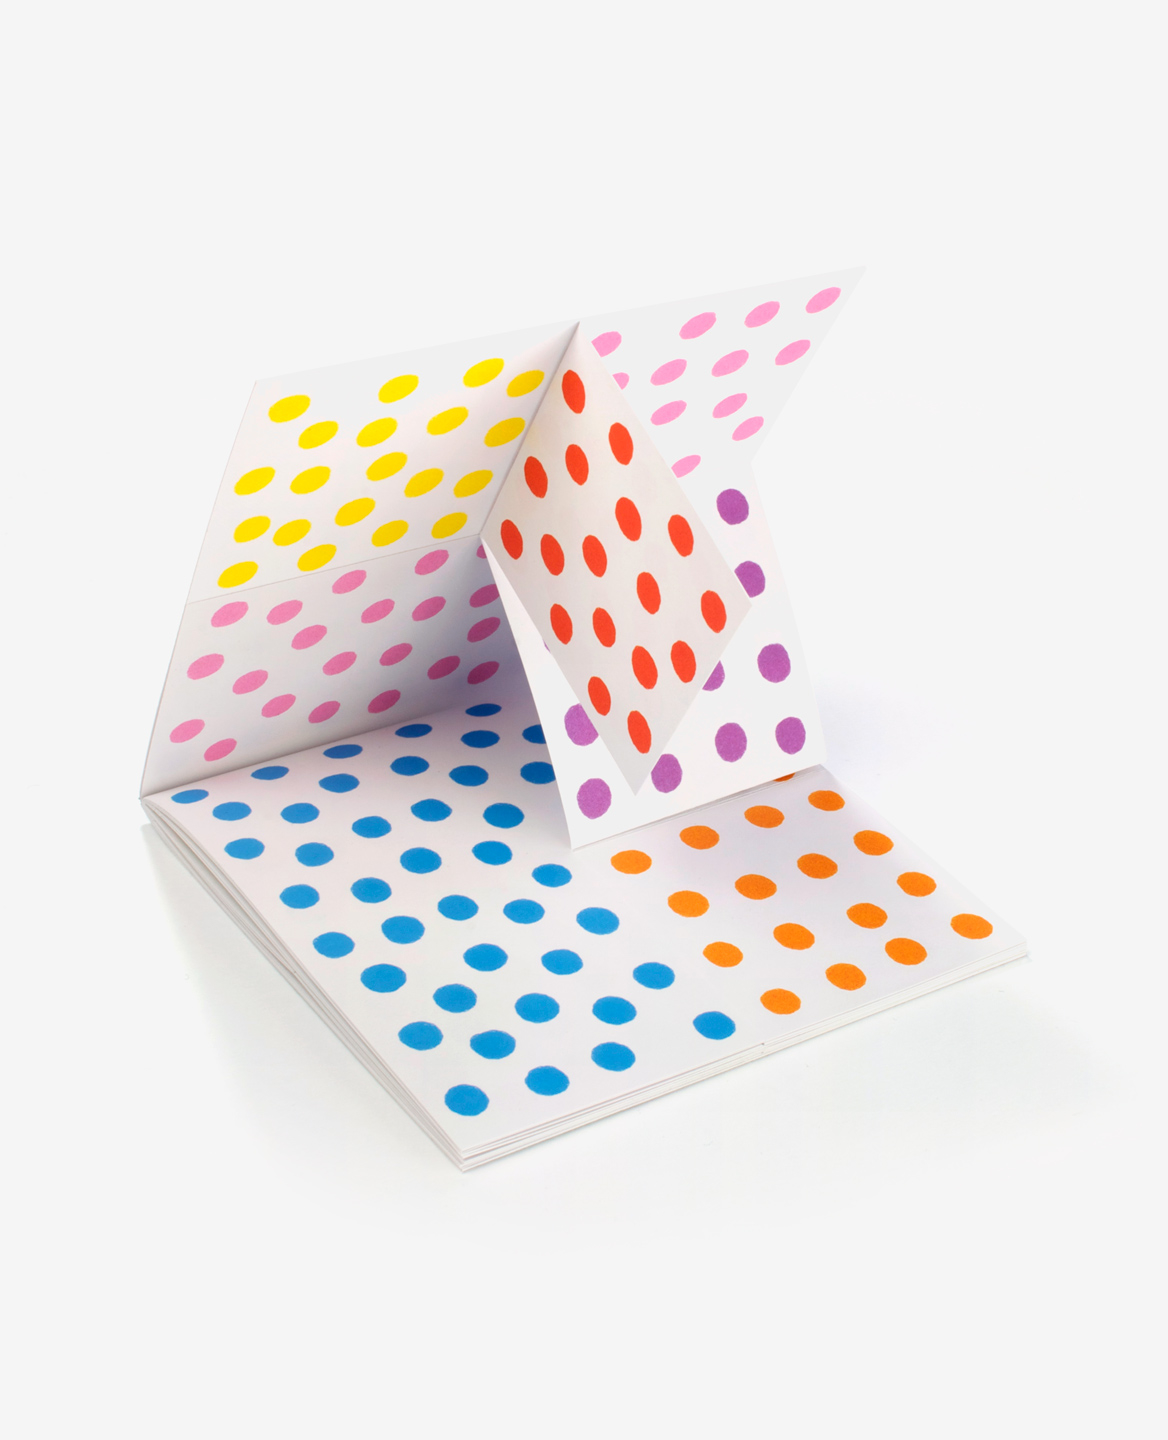 3D view of the book Dots by Antonio Ladrillo published by Éditions du livre